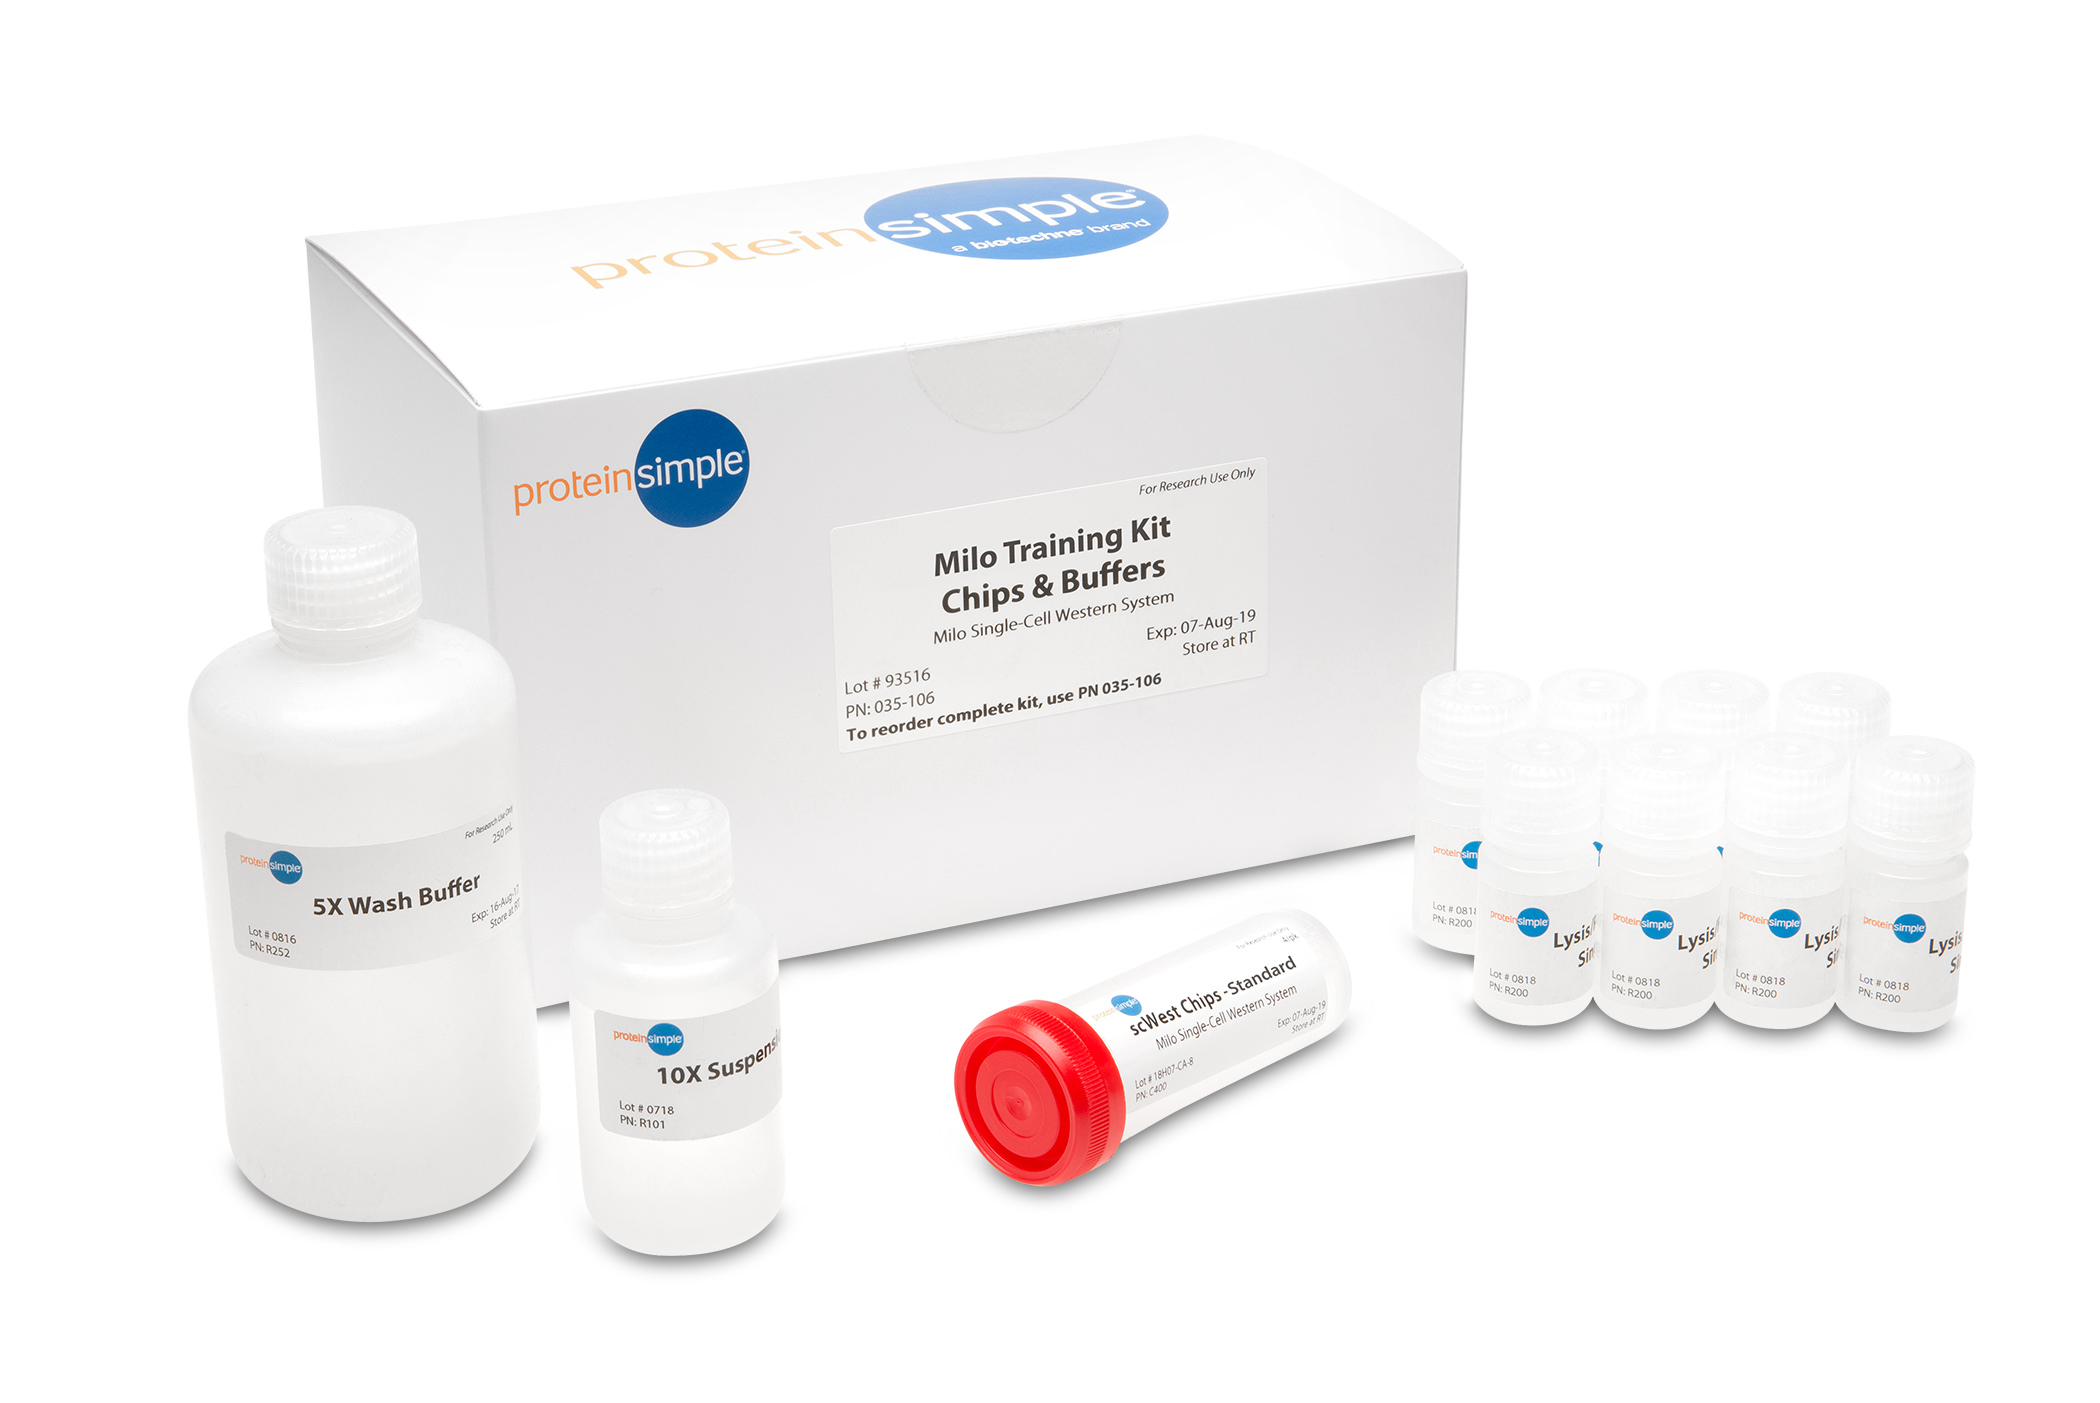 ProteinSimple Milo Training Kit for Single-Cell Western